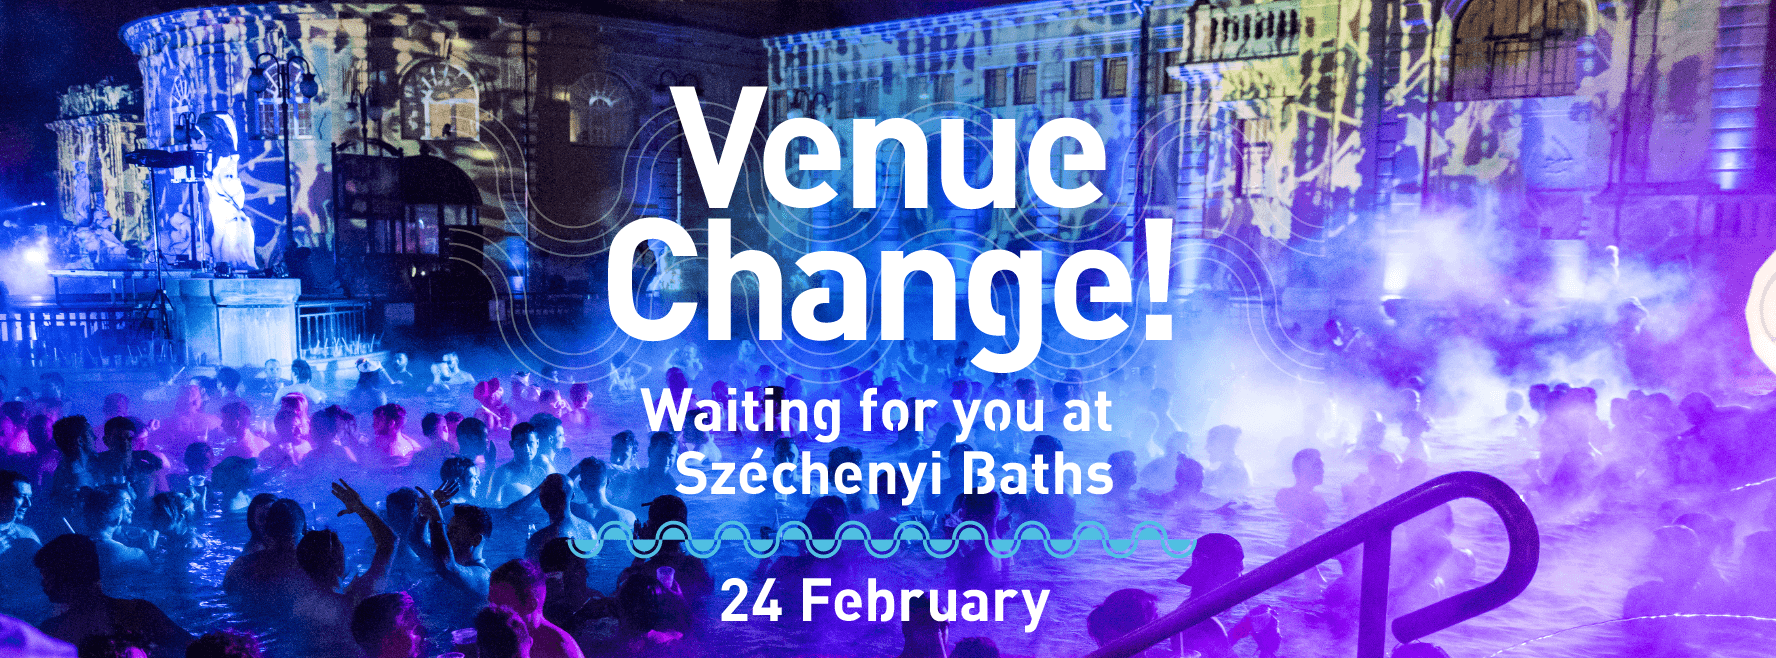 venue_change_24_february_sparty